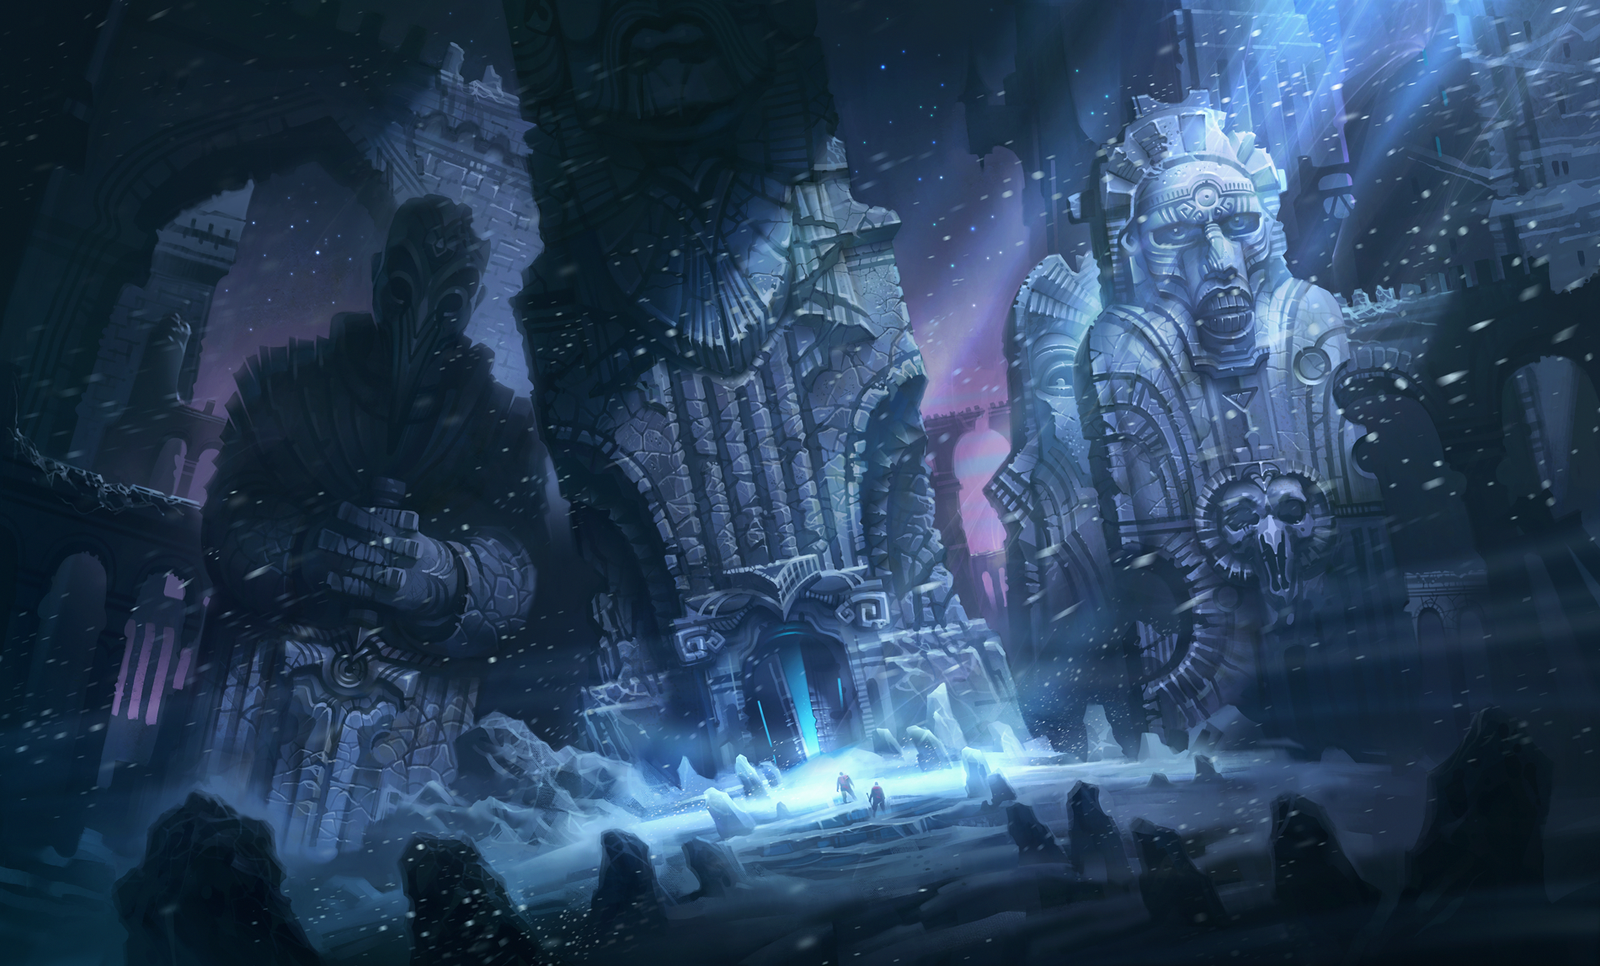 Hp Lovecraft Art Wallpapers: At The Mountains Of Madness_2_Howard Lovecraft By